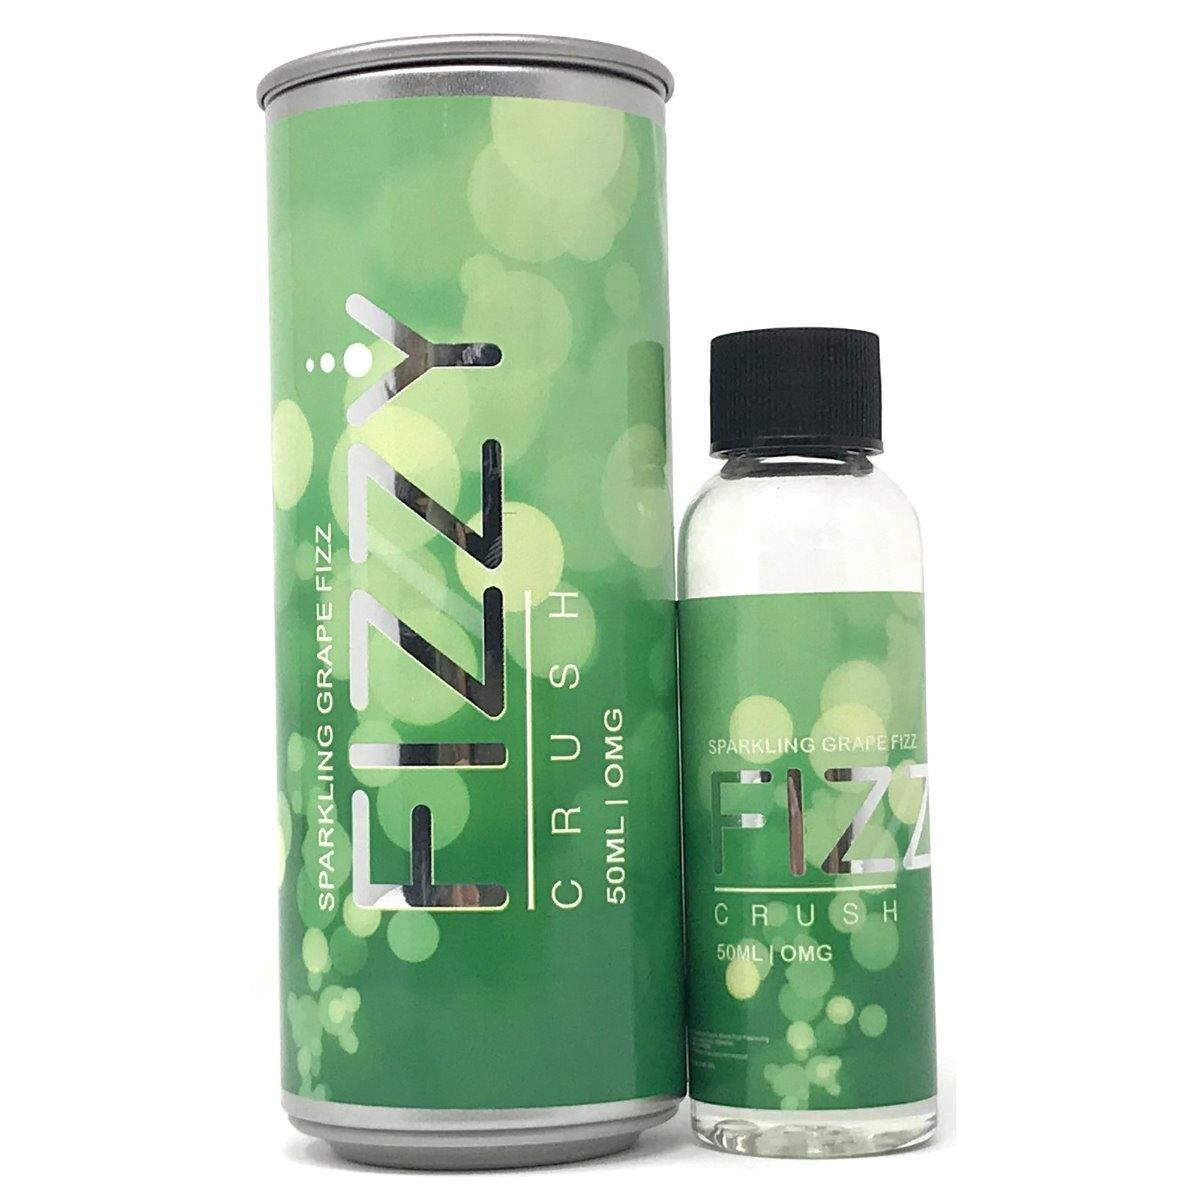 FIZZY CRUSH - SPARKLING GRAPE FIZZ- 50ml Shortfill E-Liquid-Vape Citi